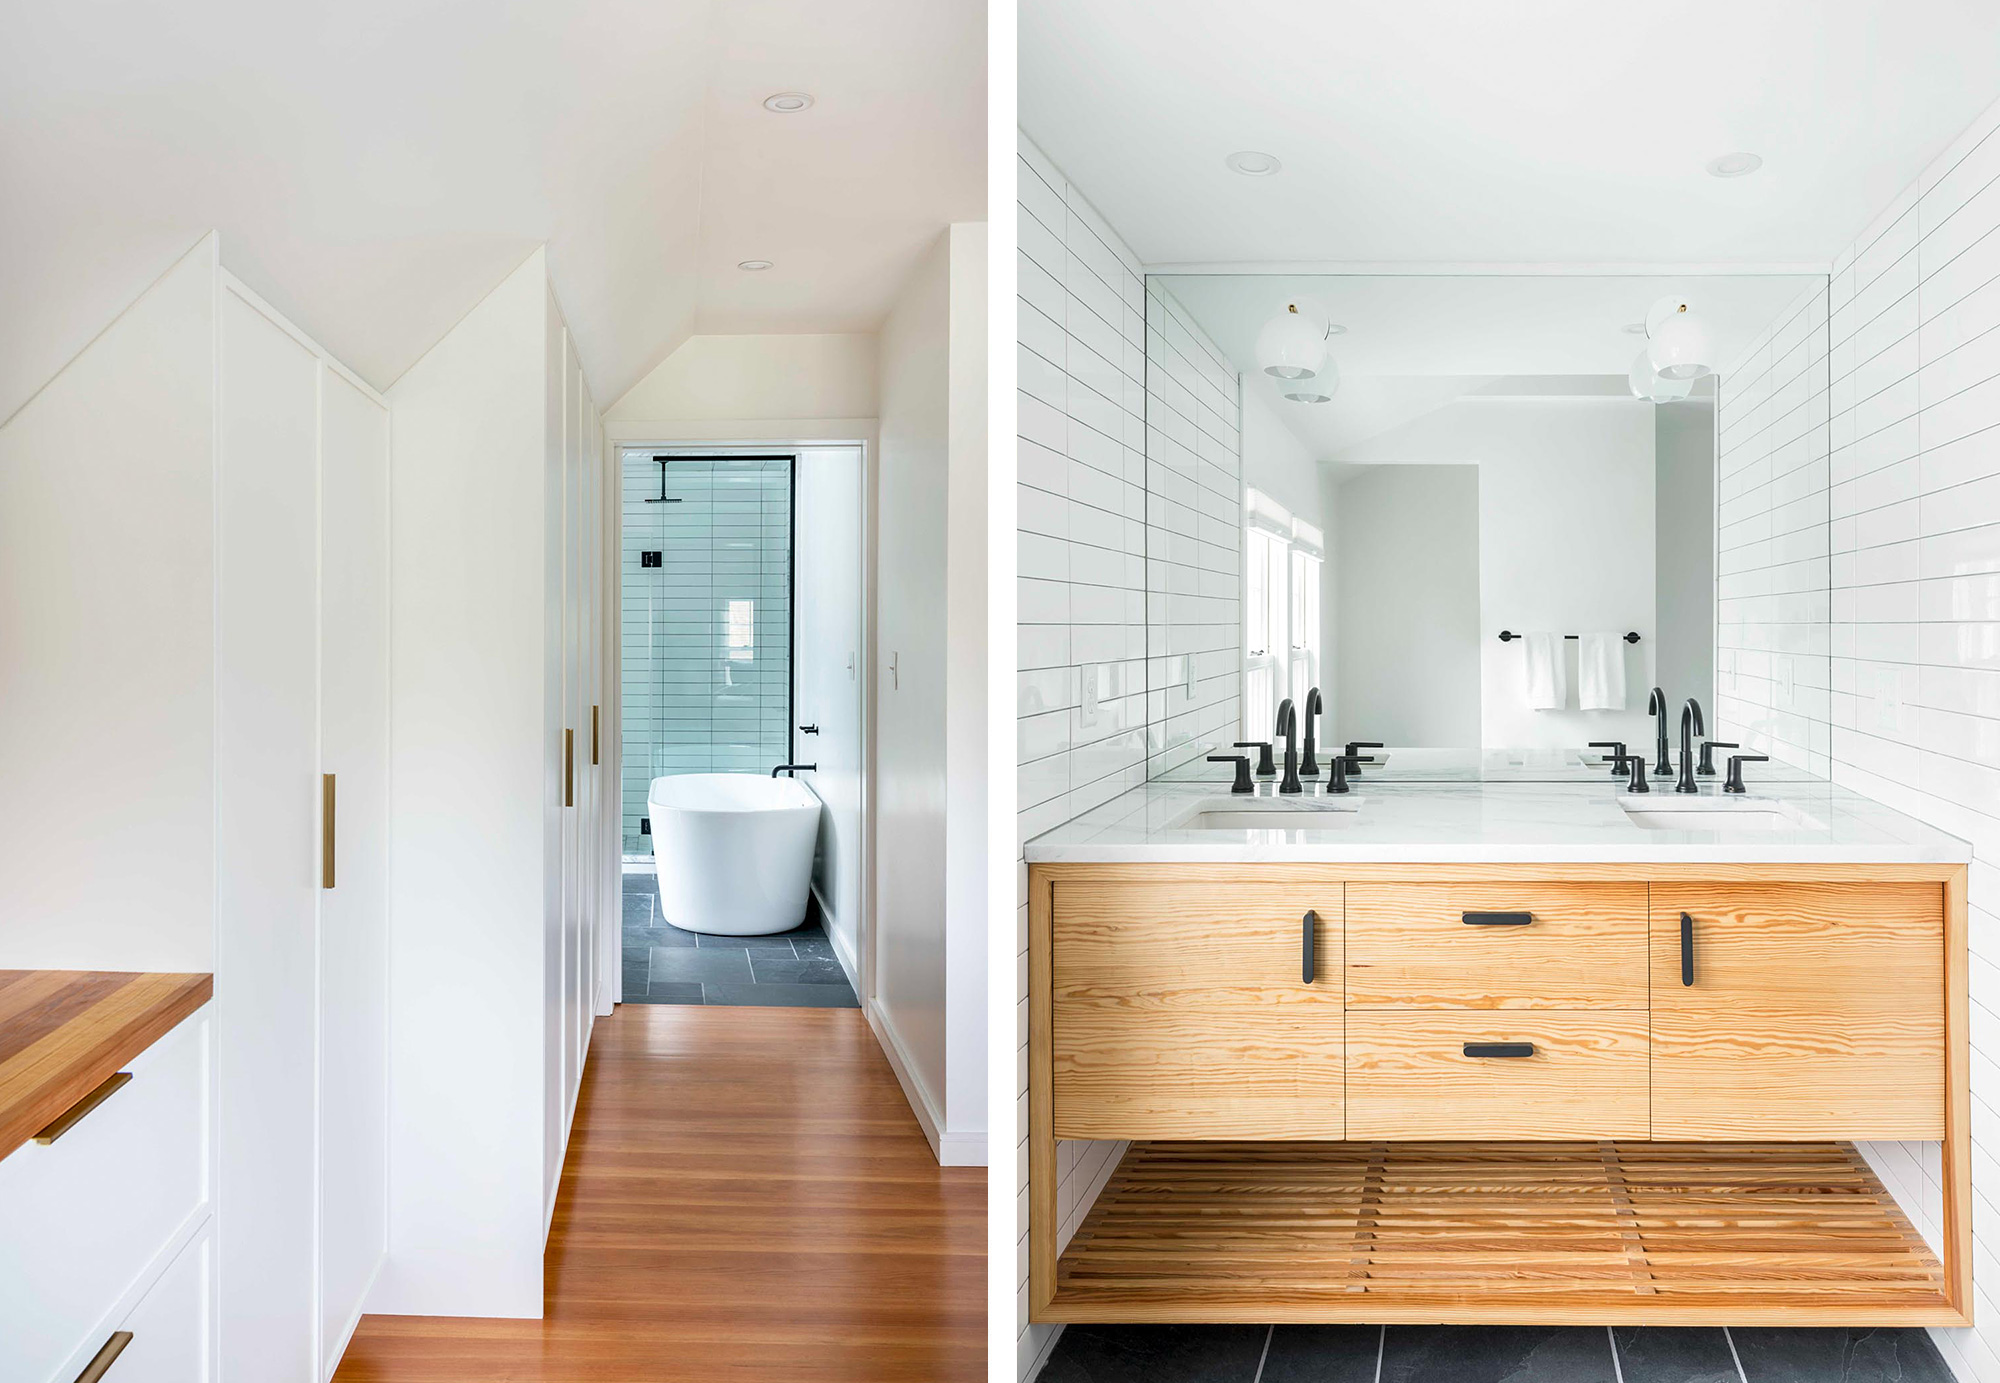 Jamaican Plain Bathroom Remodel by Shake Architecture